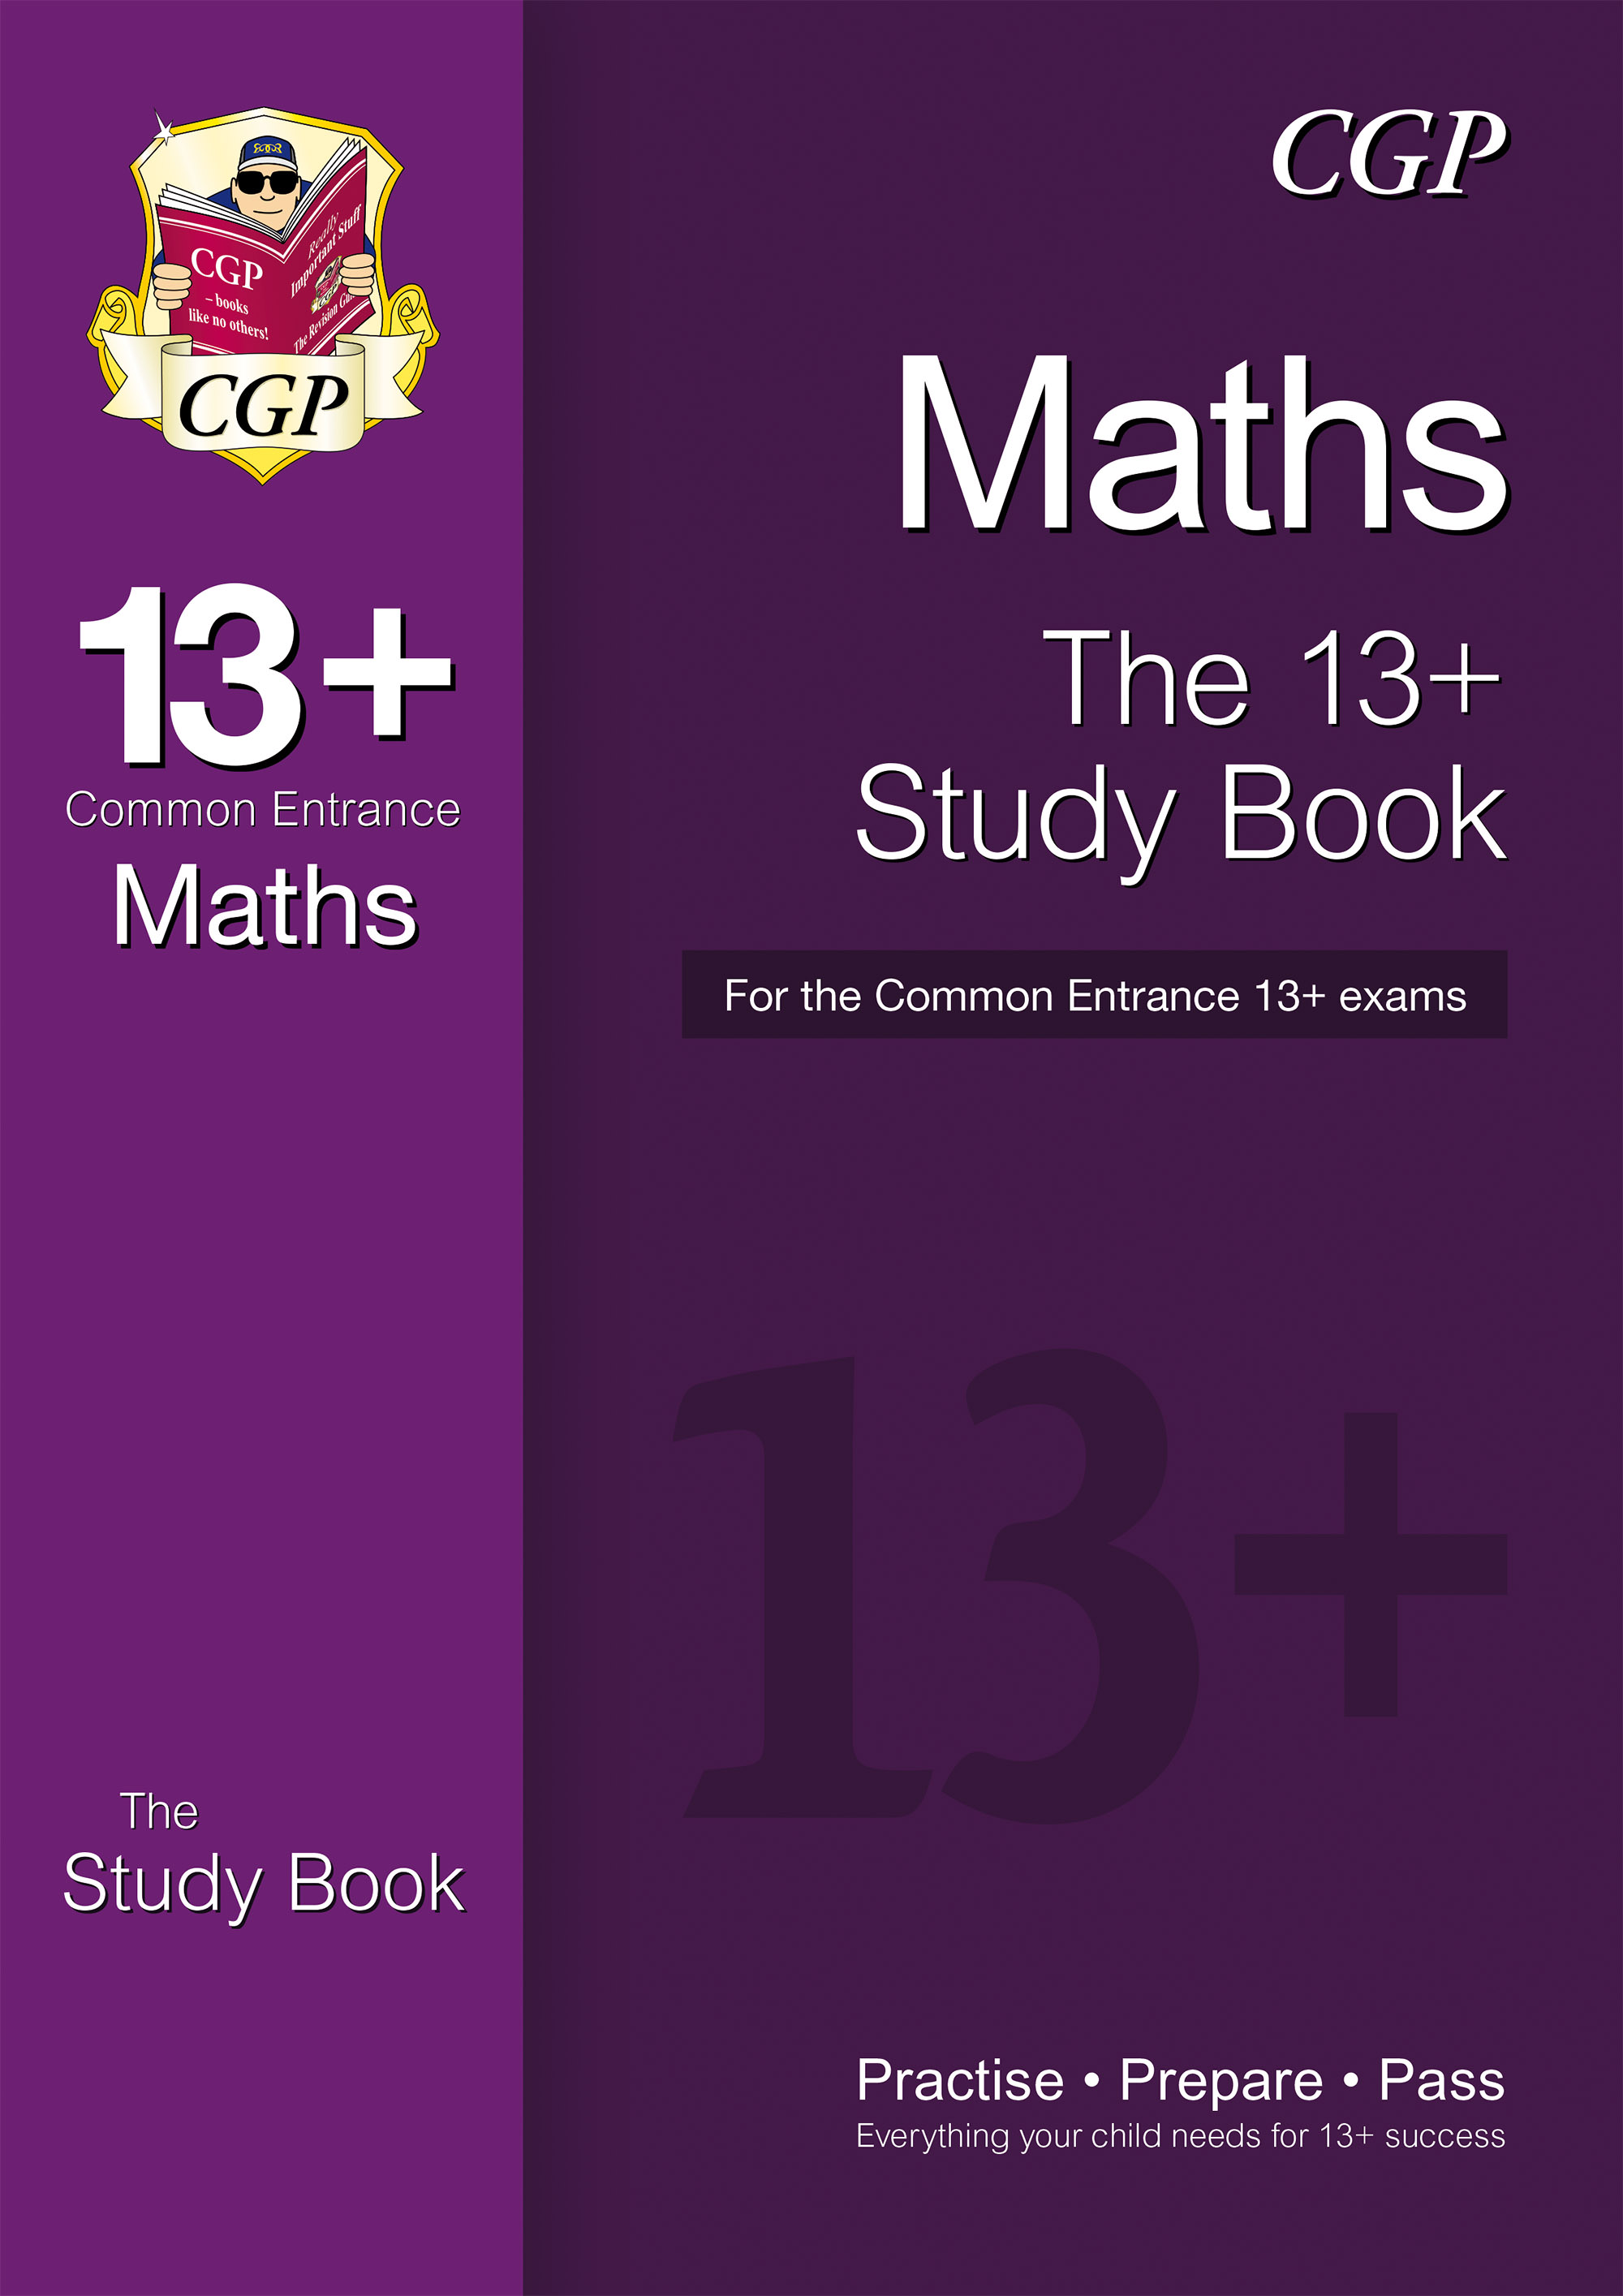 MIRT3DK - New 13+ Maths Study Book for the Common Entrance Exams